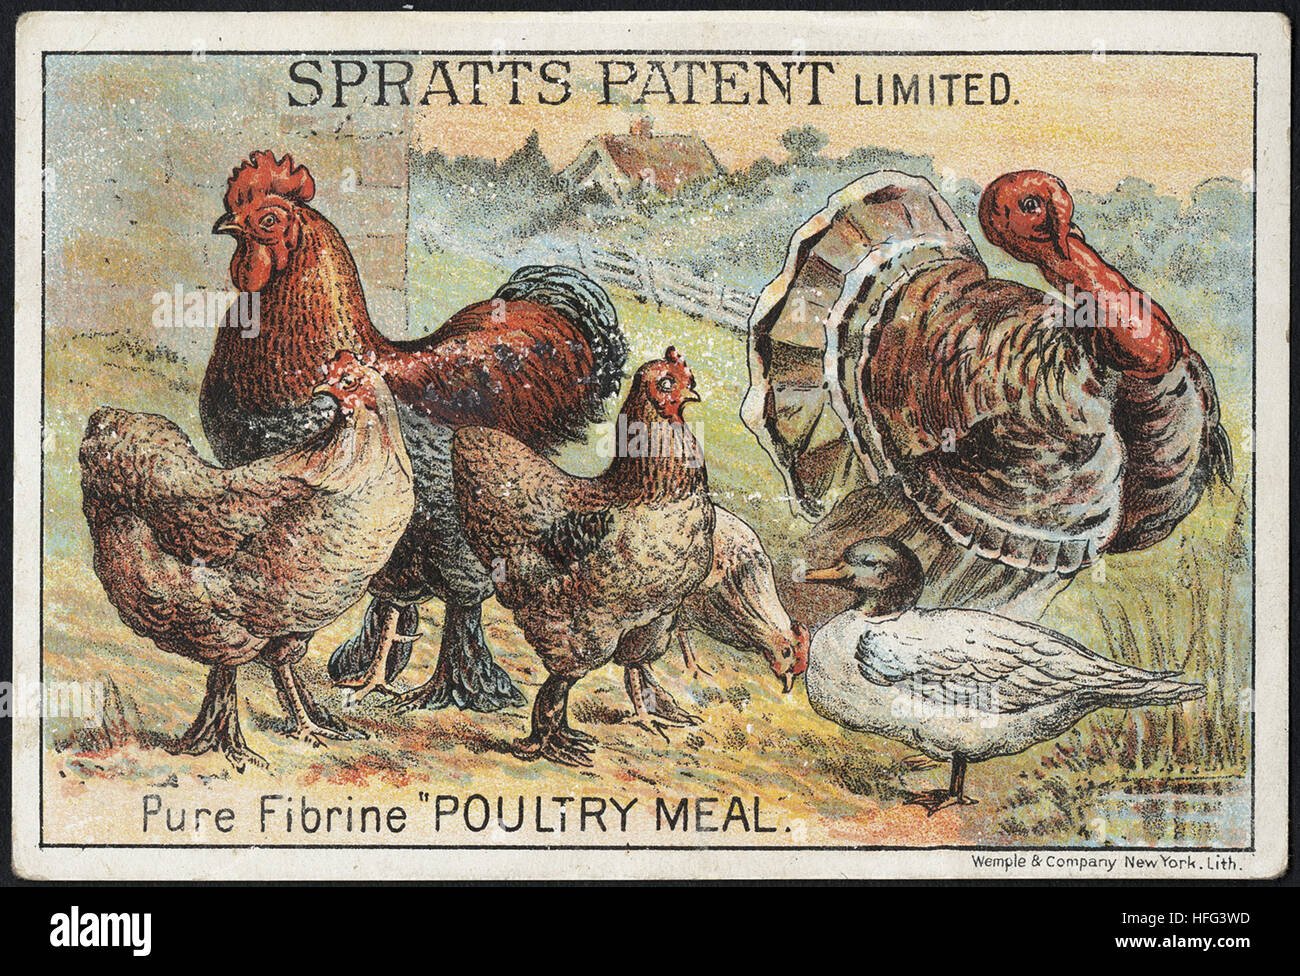 Agriculture Trade Cards - Spratt's Patent Limited. Pure Fibrine 'Poultry Meal.' - Stock Image